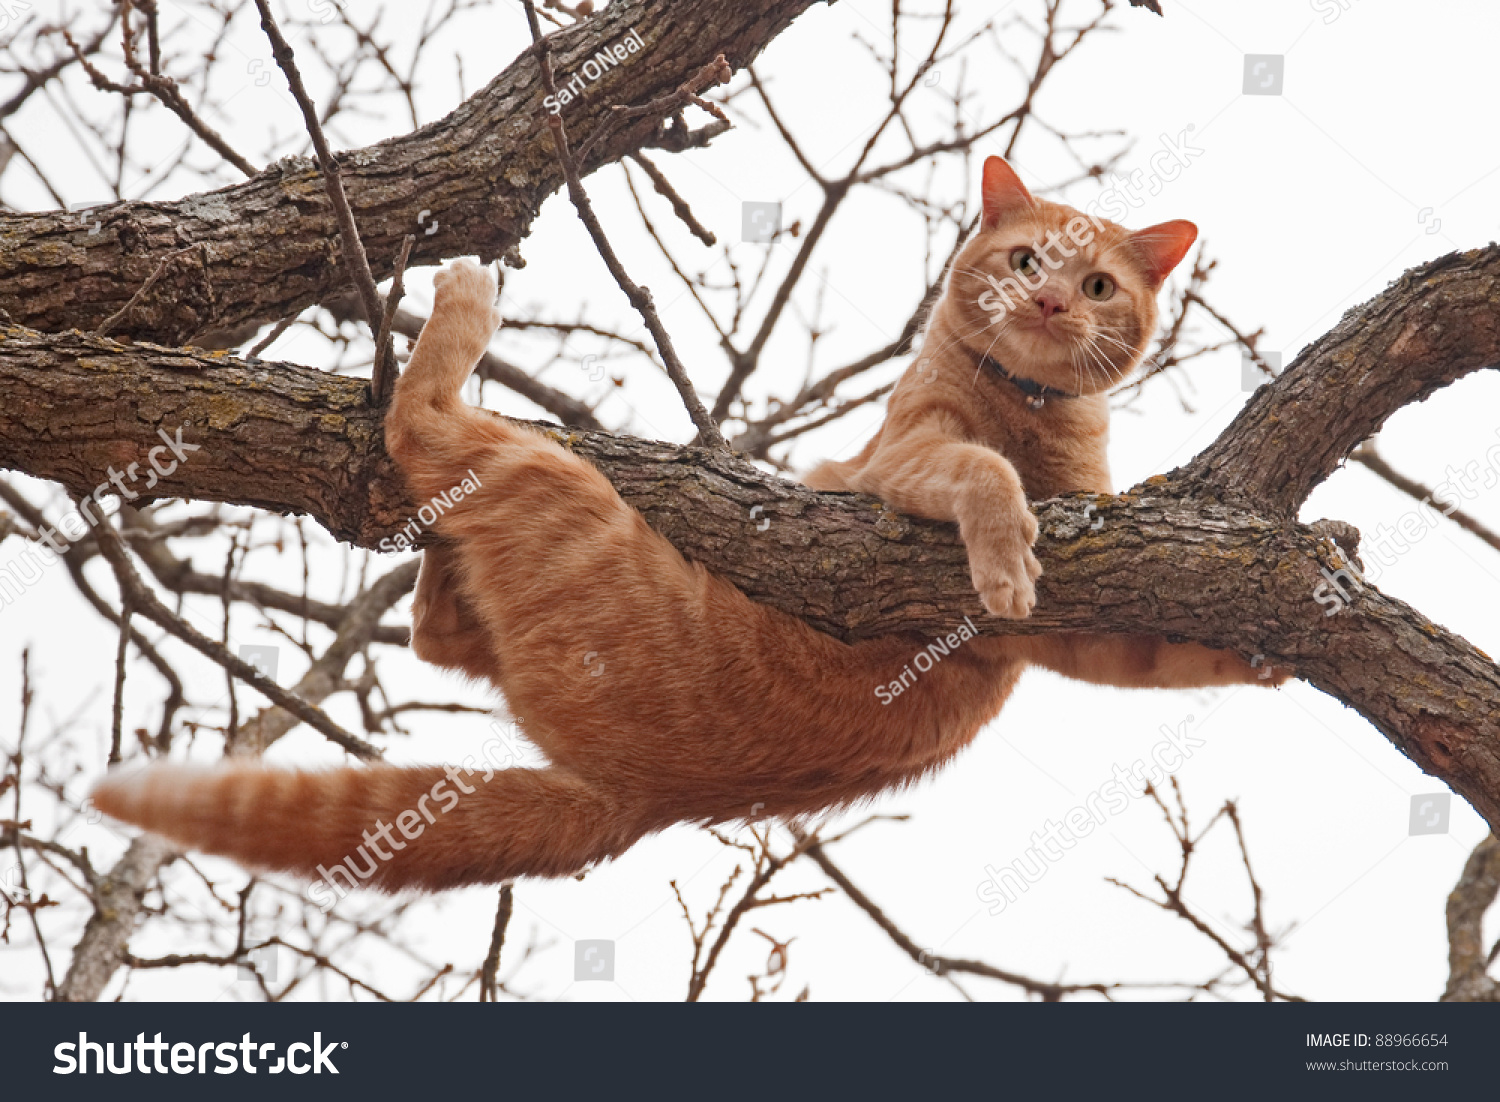 cat in distress orange tabby cat about to fall off of a tree with a worried look on his face. Black Bedroom Furniture Sets. Home Design Ideas